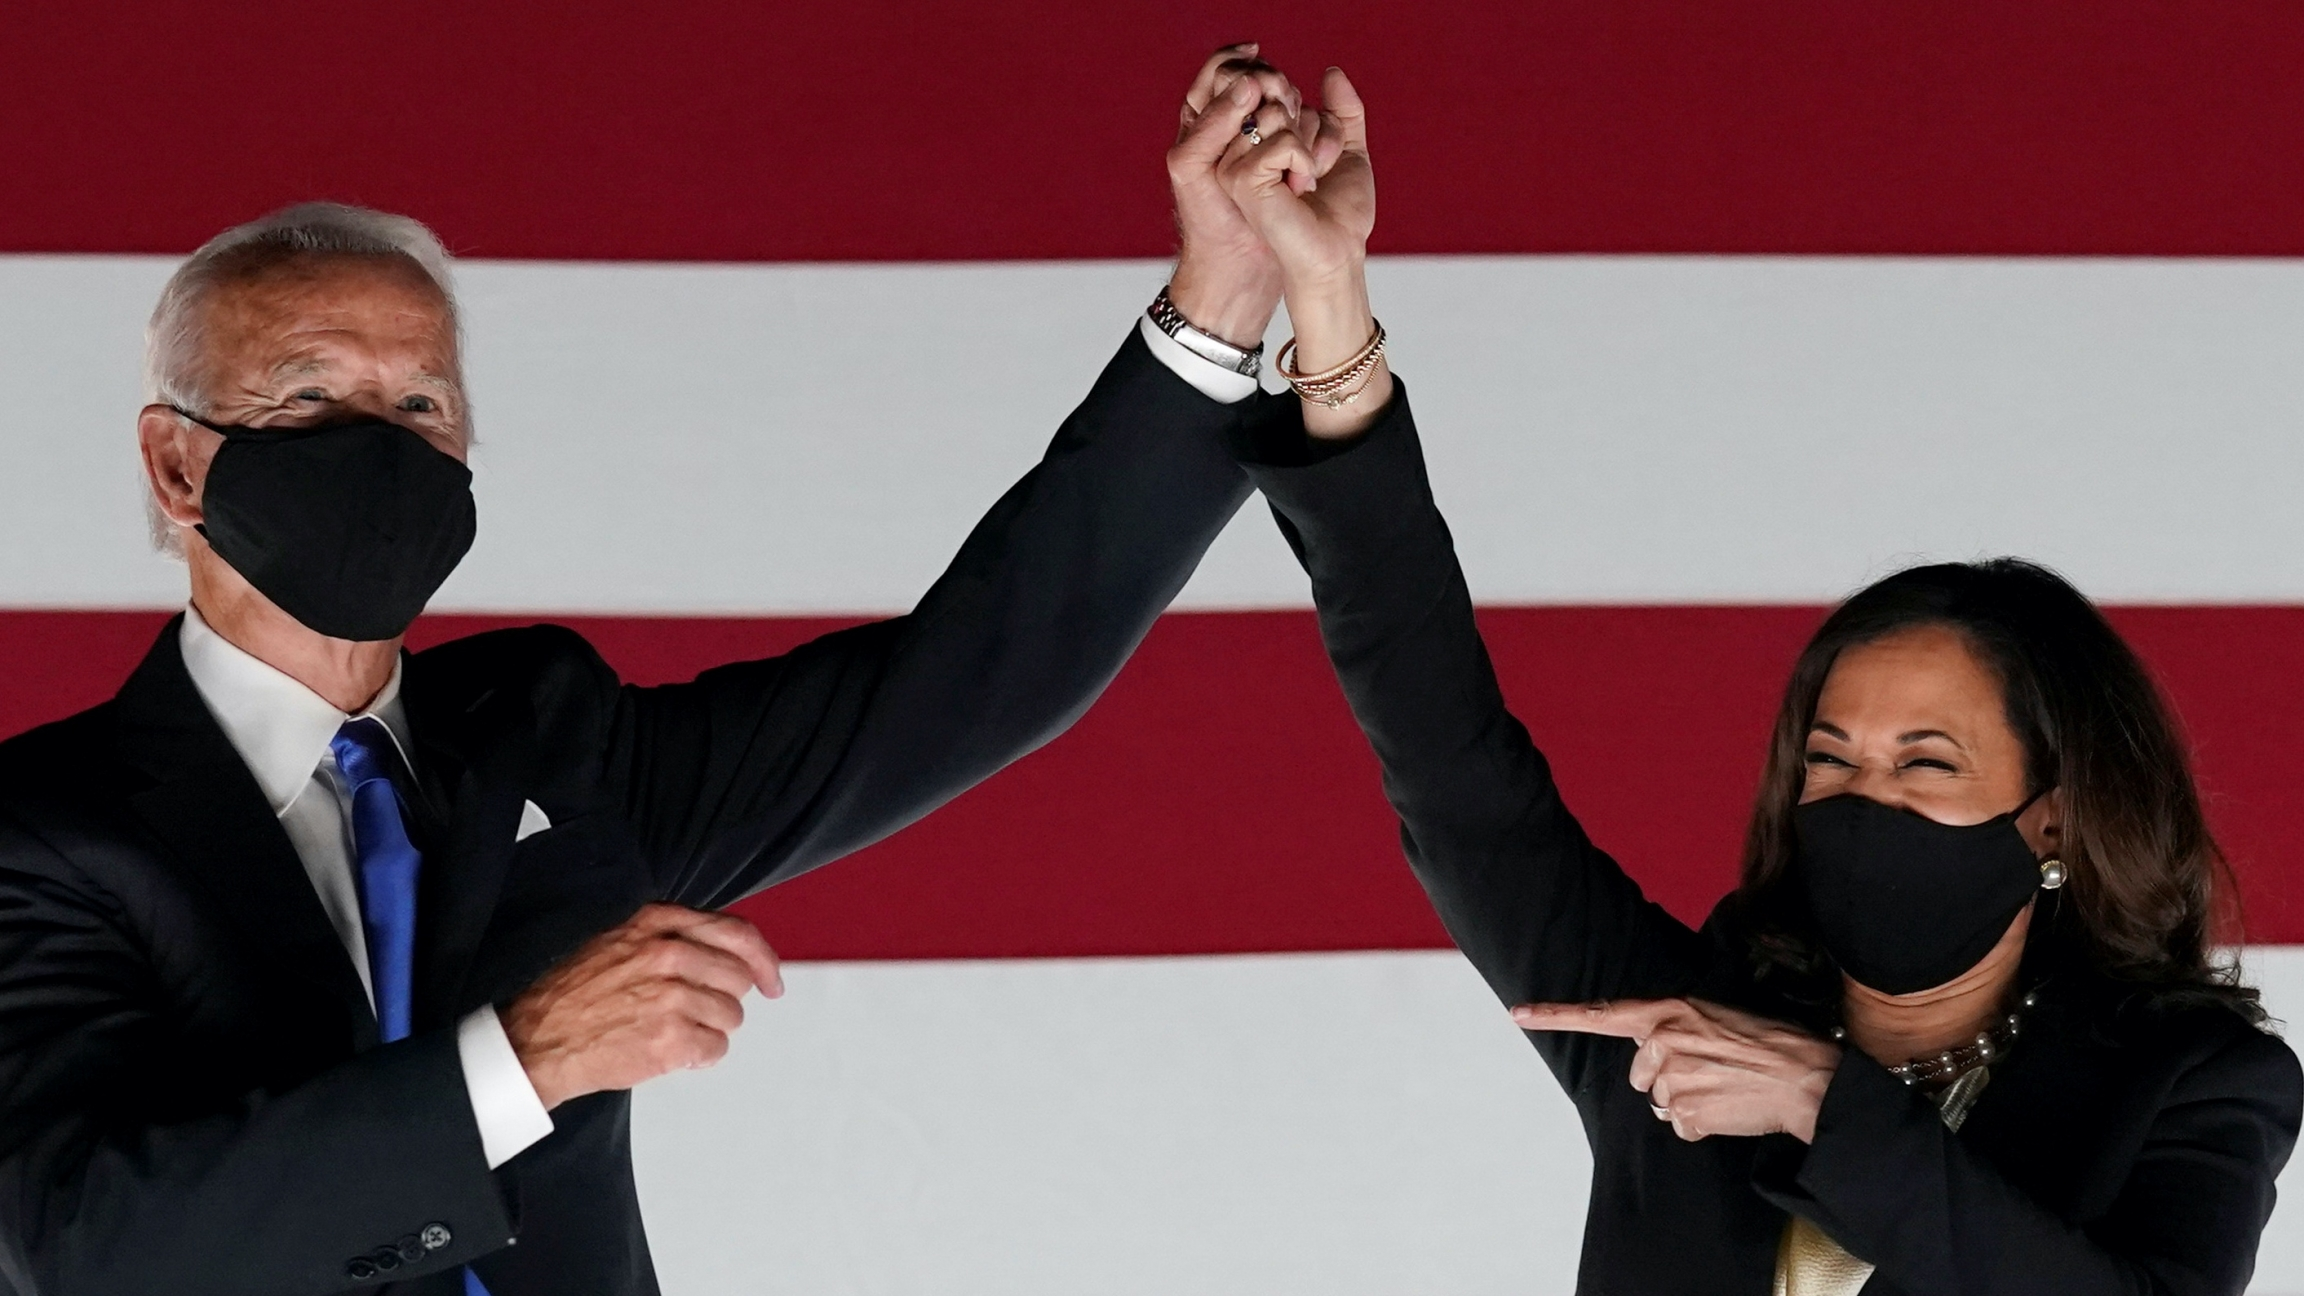 Biden and Harris wear masks, clasp hands, and Harris points at Biden, smiling with her eyes.